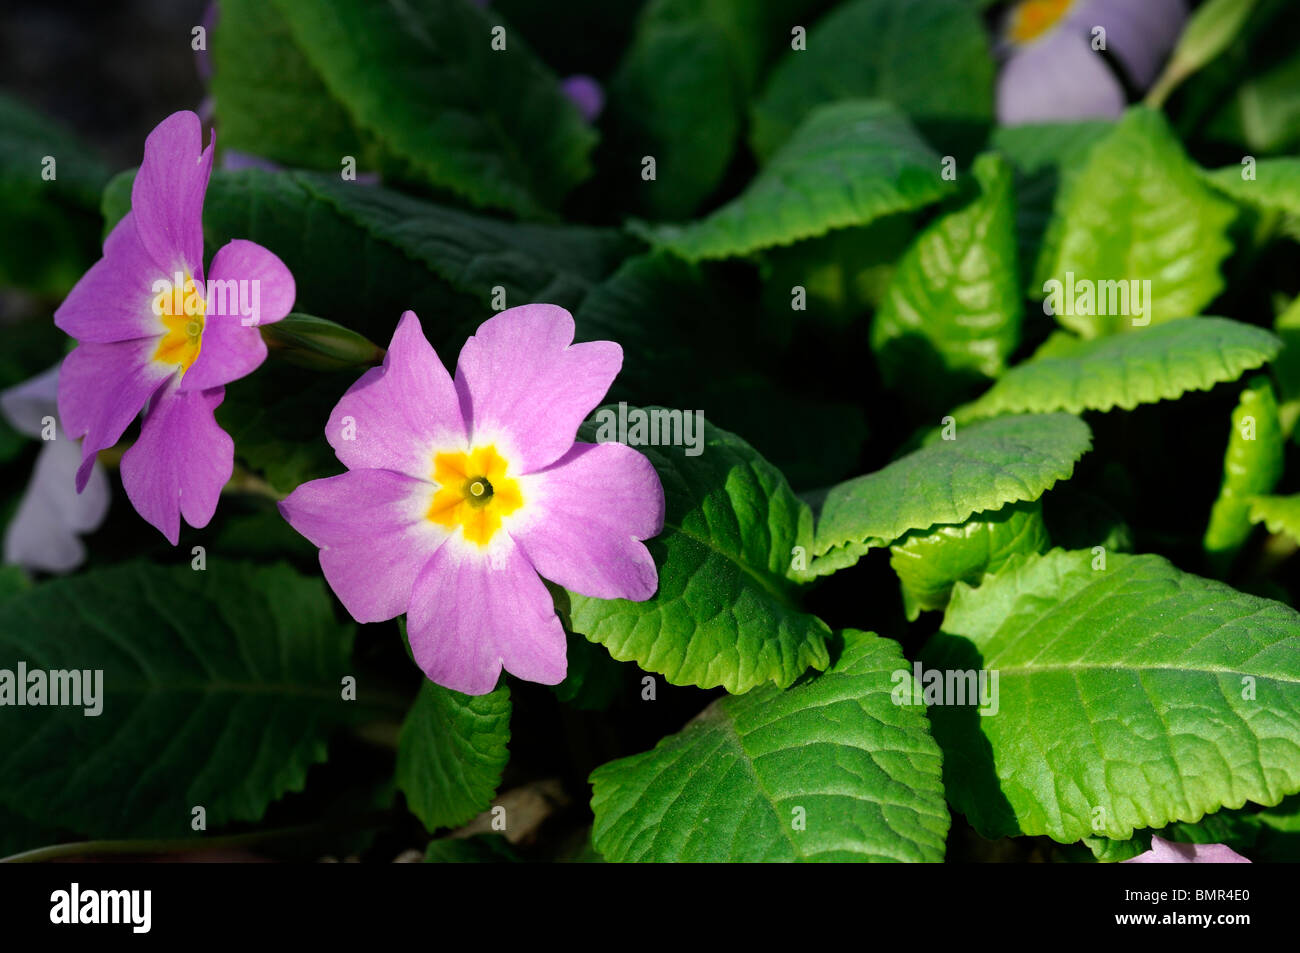 Small purple flowers with yellow centre stock photos small purple primula vulgaris subsp sibthorpii flowers purple yellow eye centre set against a green leafy leaf background mightylinksfo